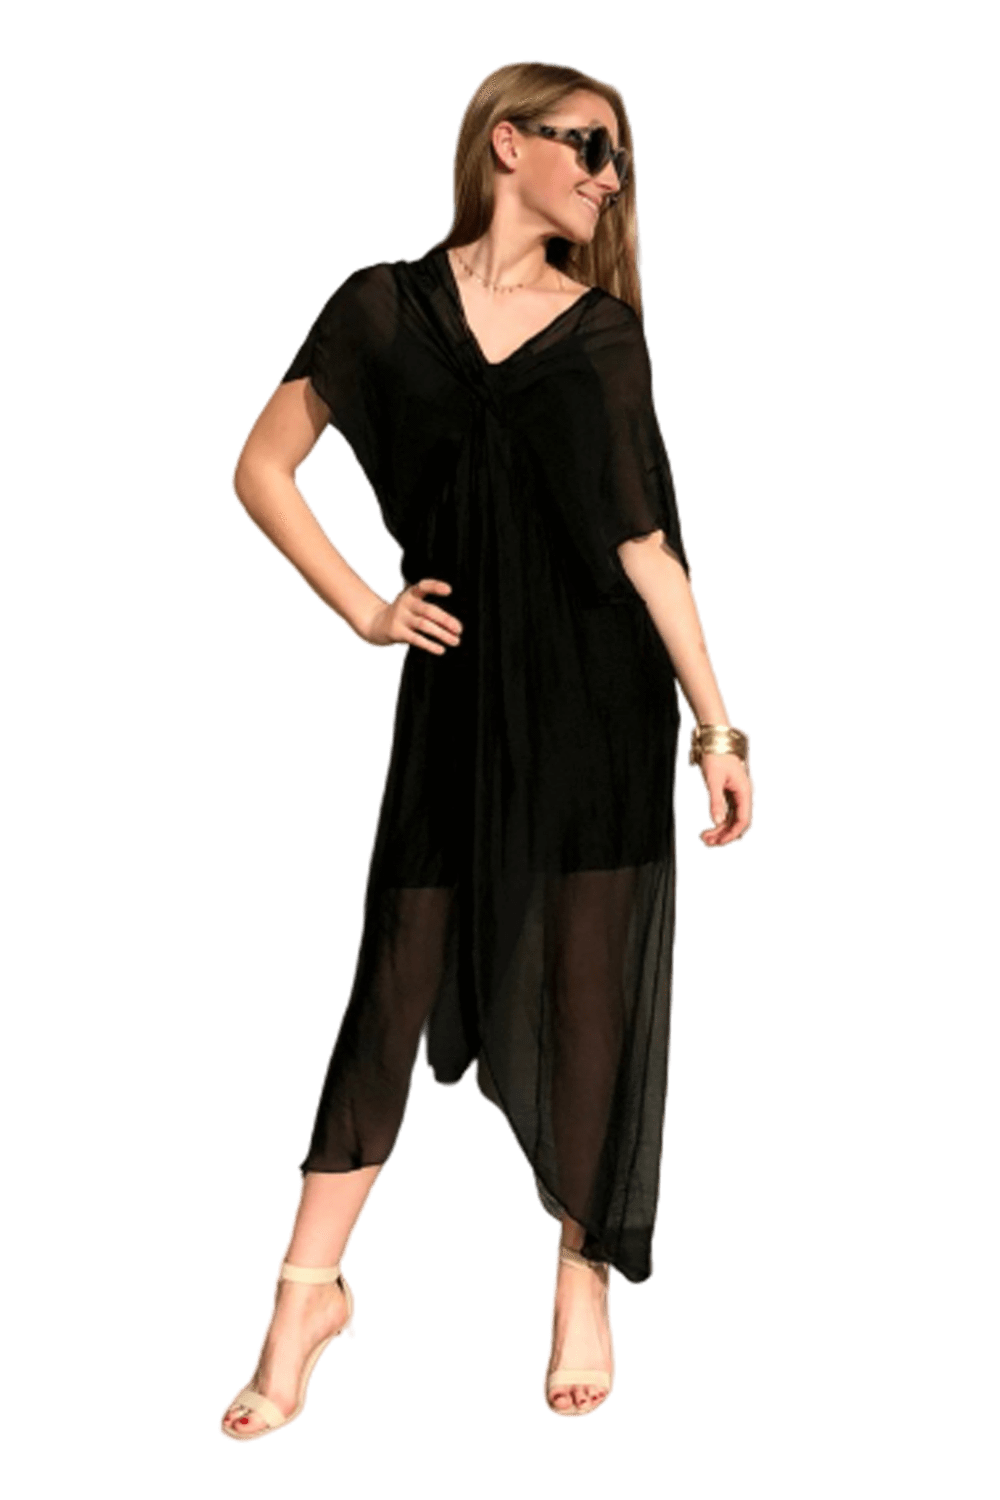 shop-sofia Kendra Black Tunic Dress Sofia Collections Italian Silk Linen Satin